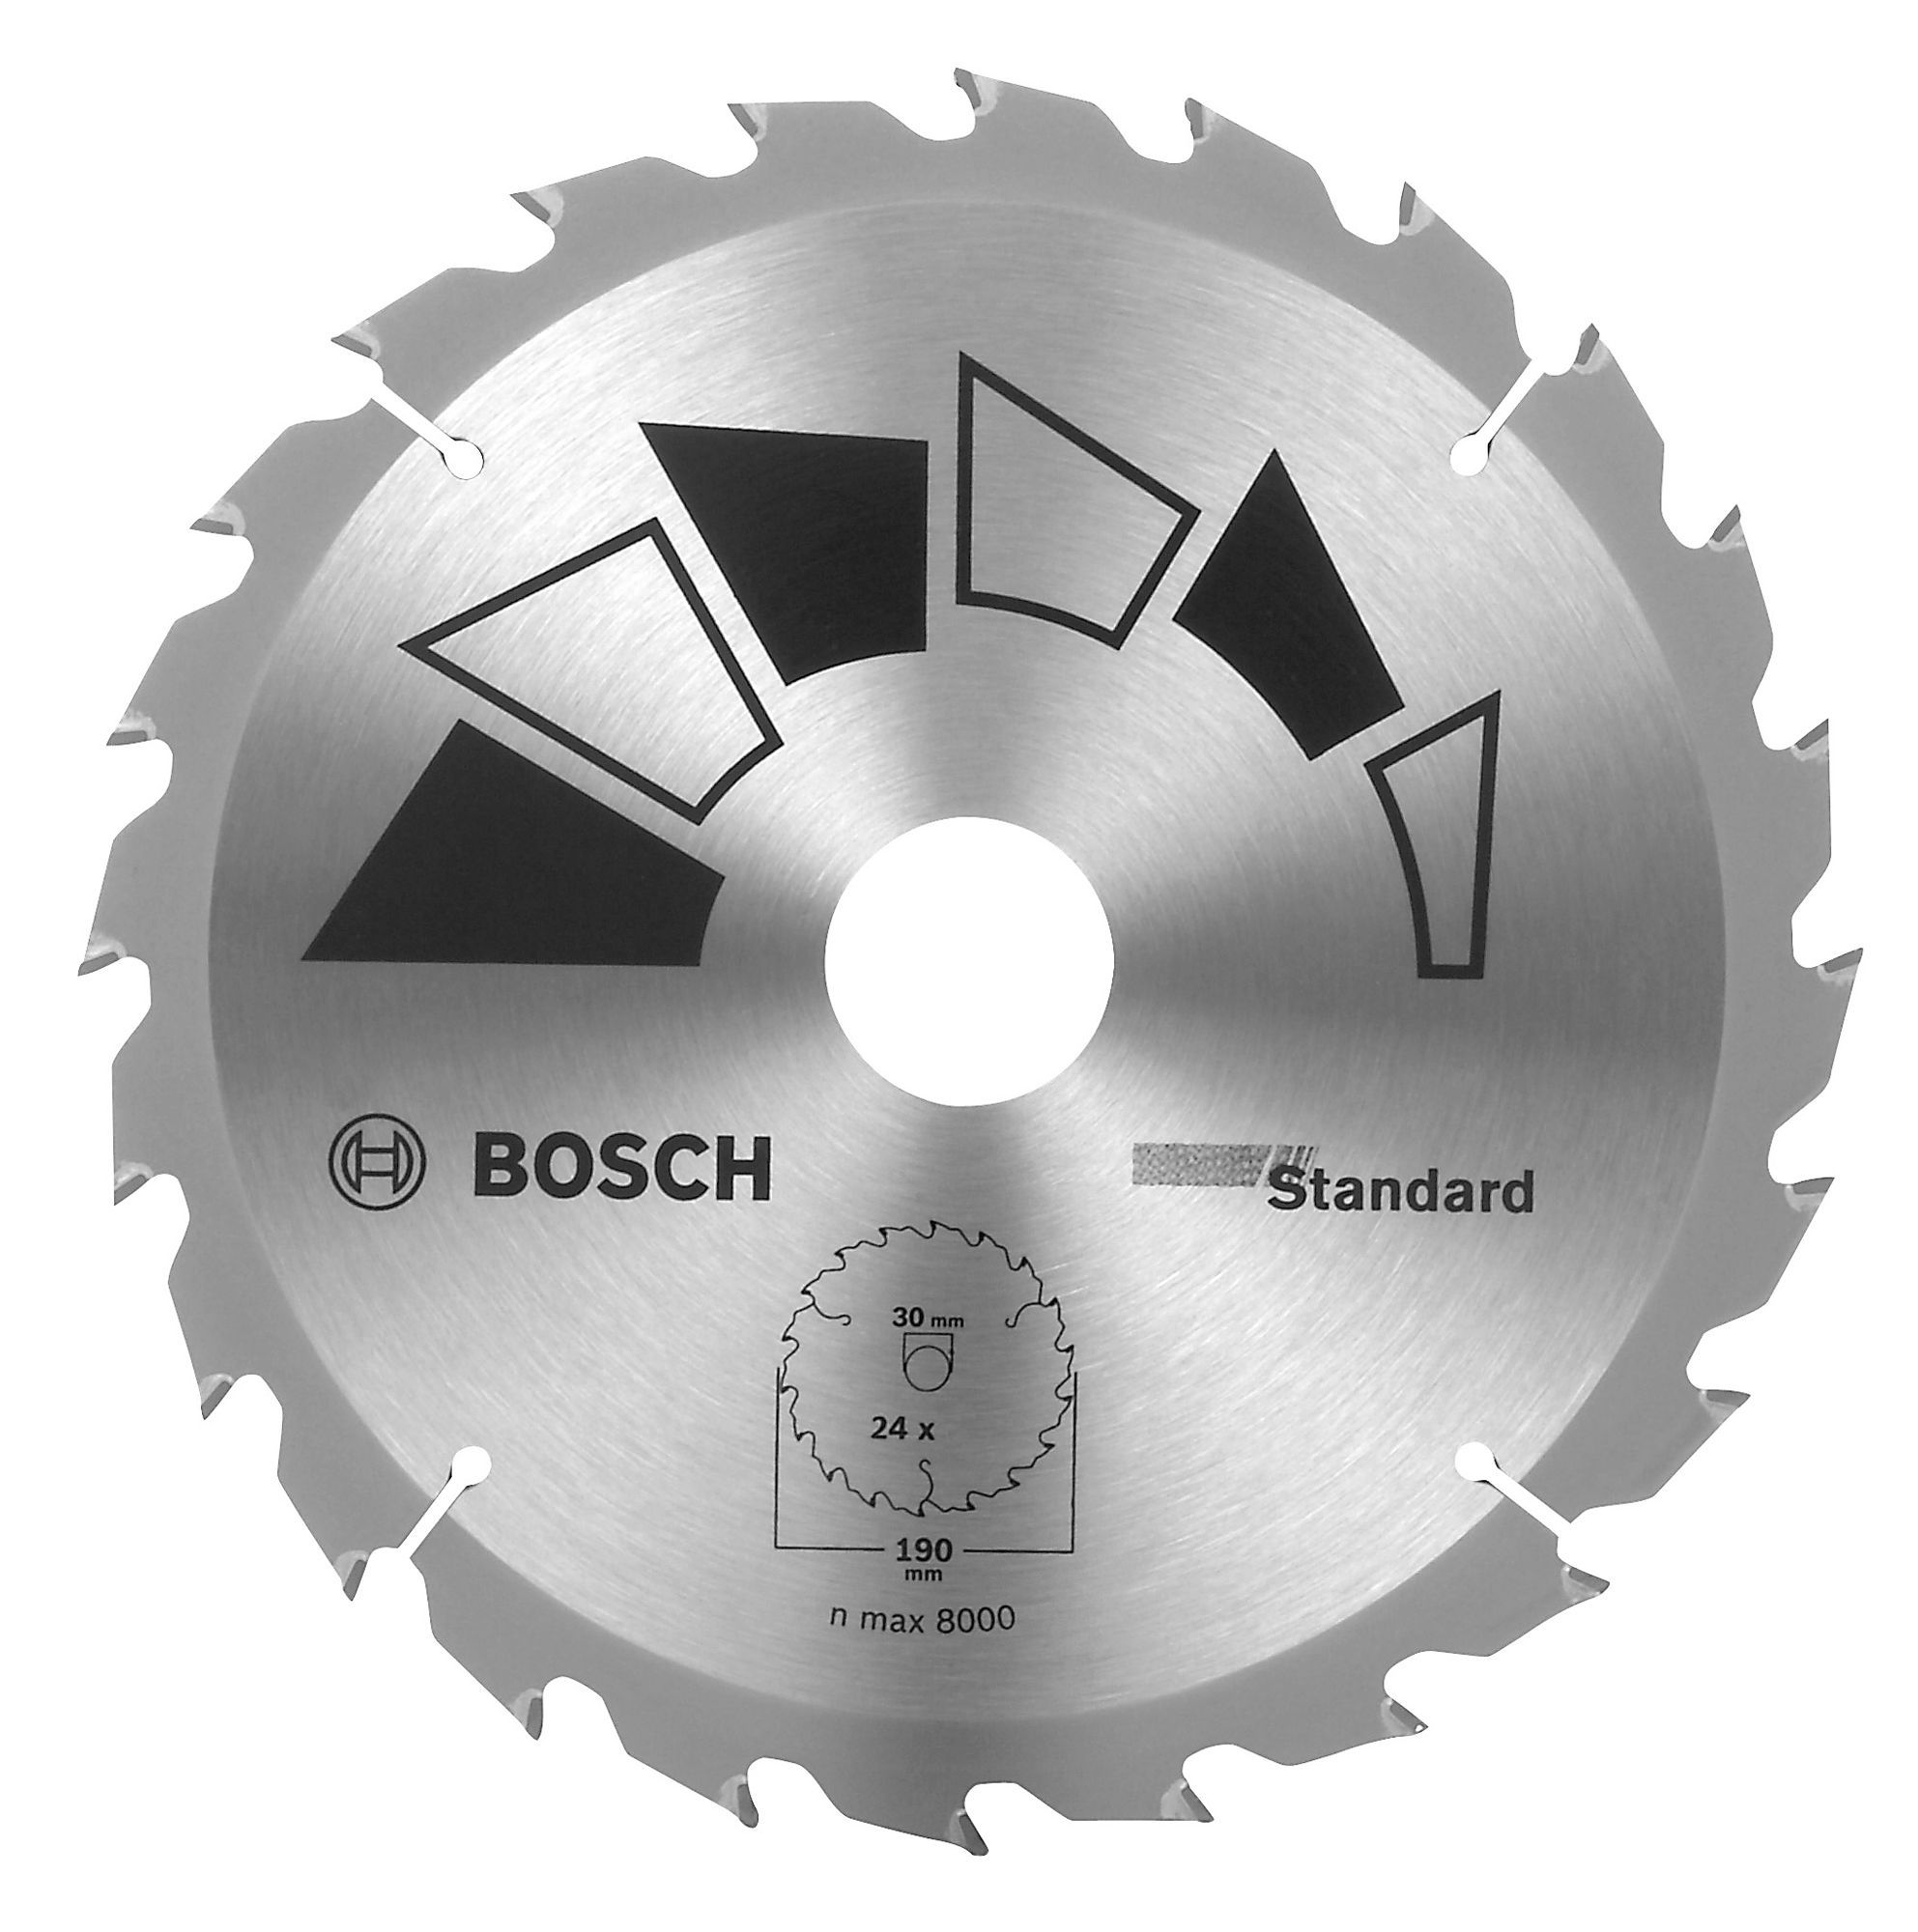 Bosch 18t circular saw blade dia140mm departments diy at bq greentooth Image collections